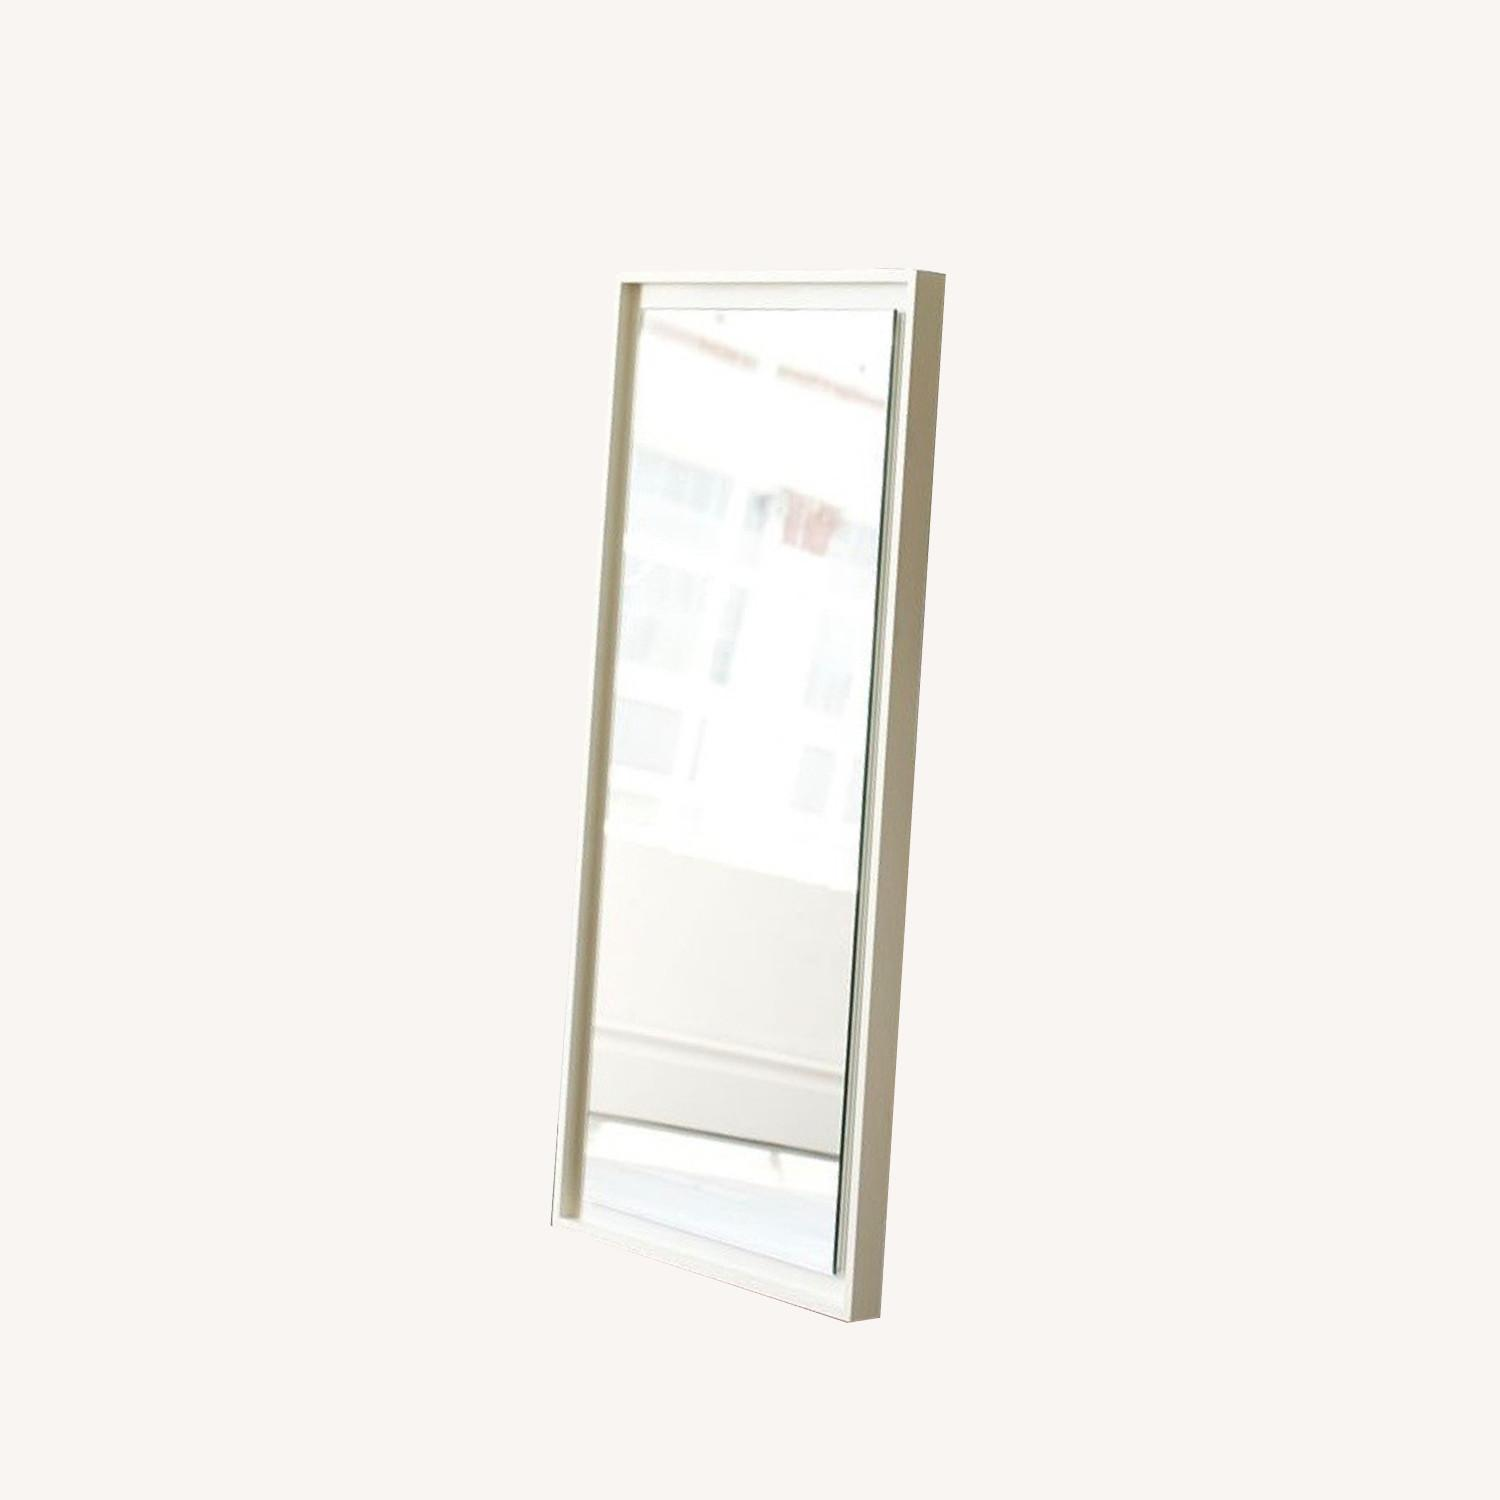 West Elm Small Floating Wood Wall Mirror - image-0